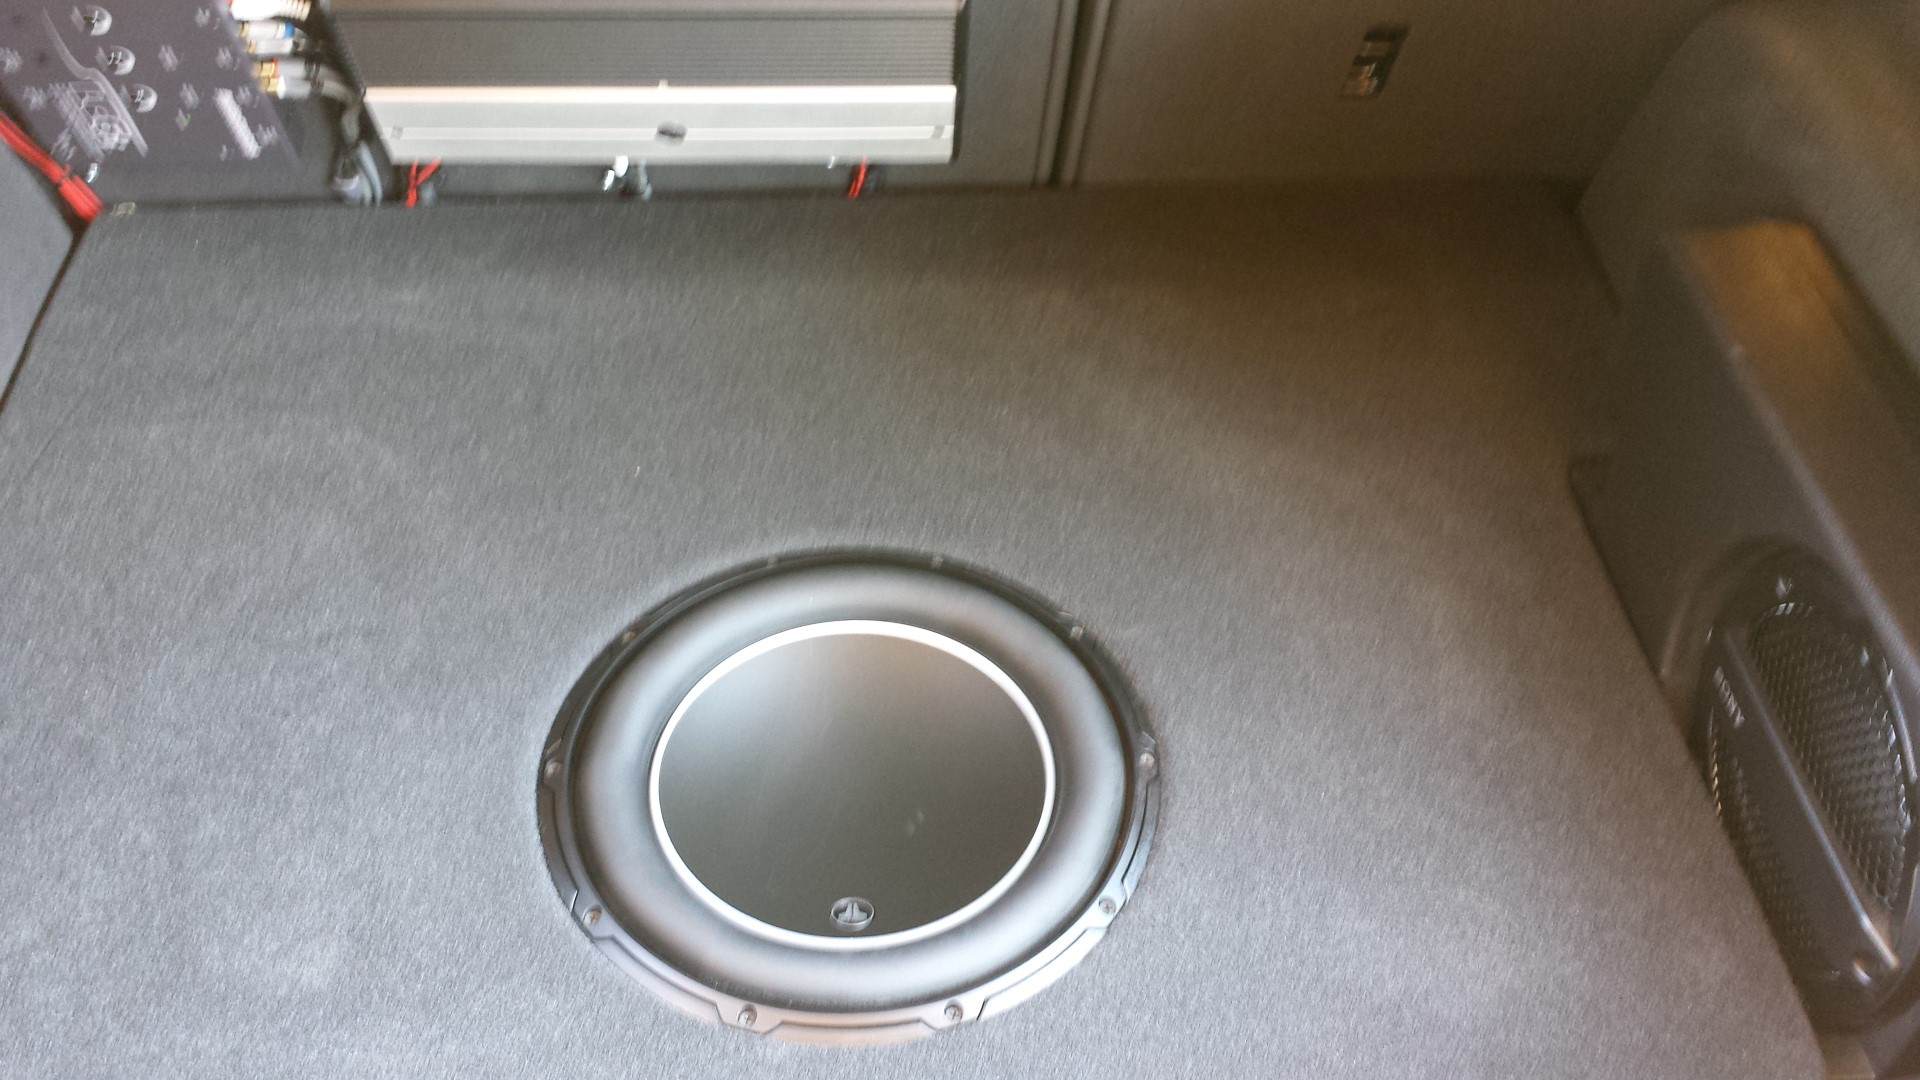 Subwoofer specs and box specs